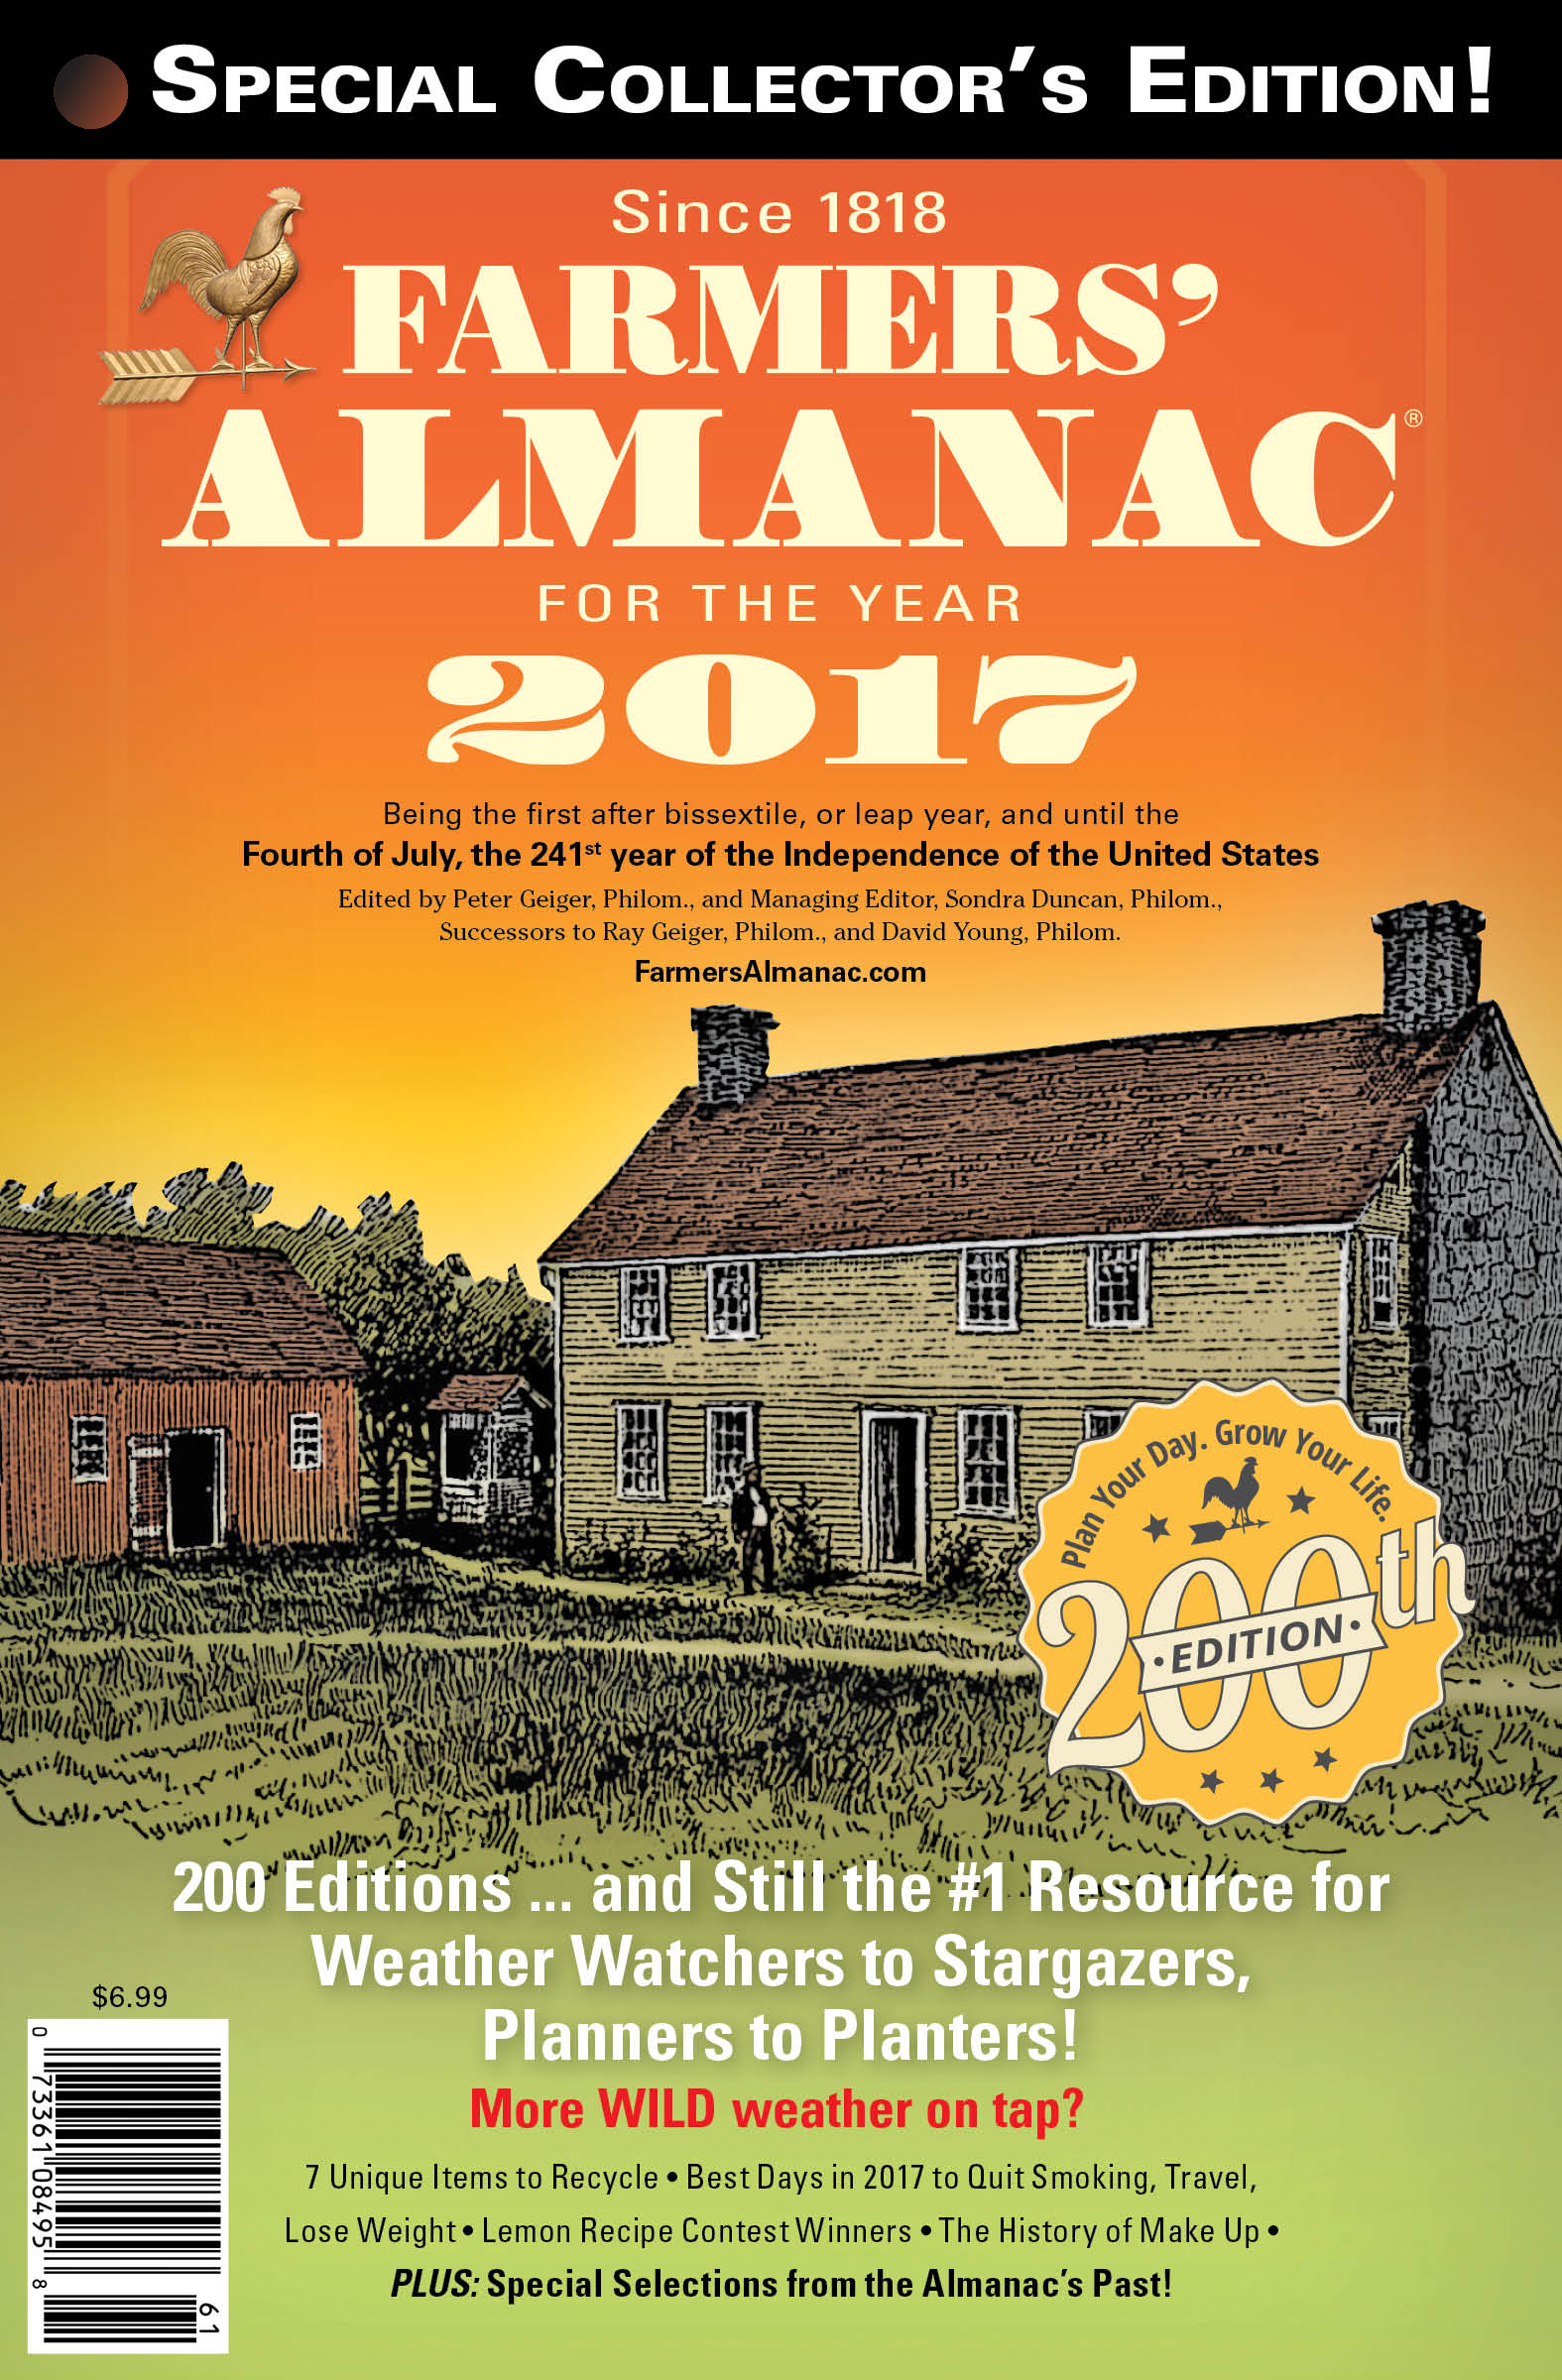 Weather Predictions Farmers Know Best: Almanac Winter Weather Predictions 2017